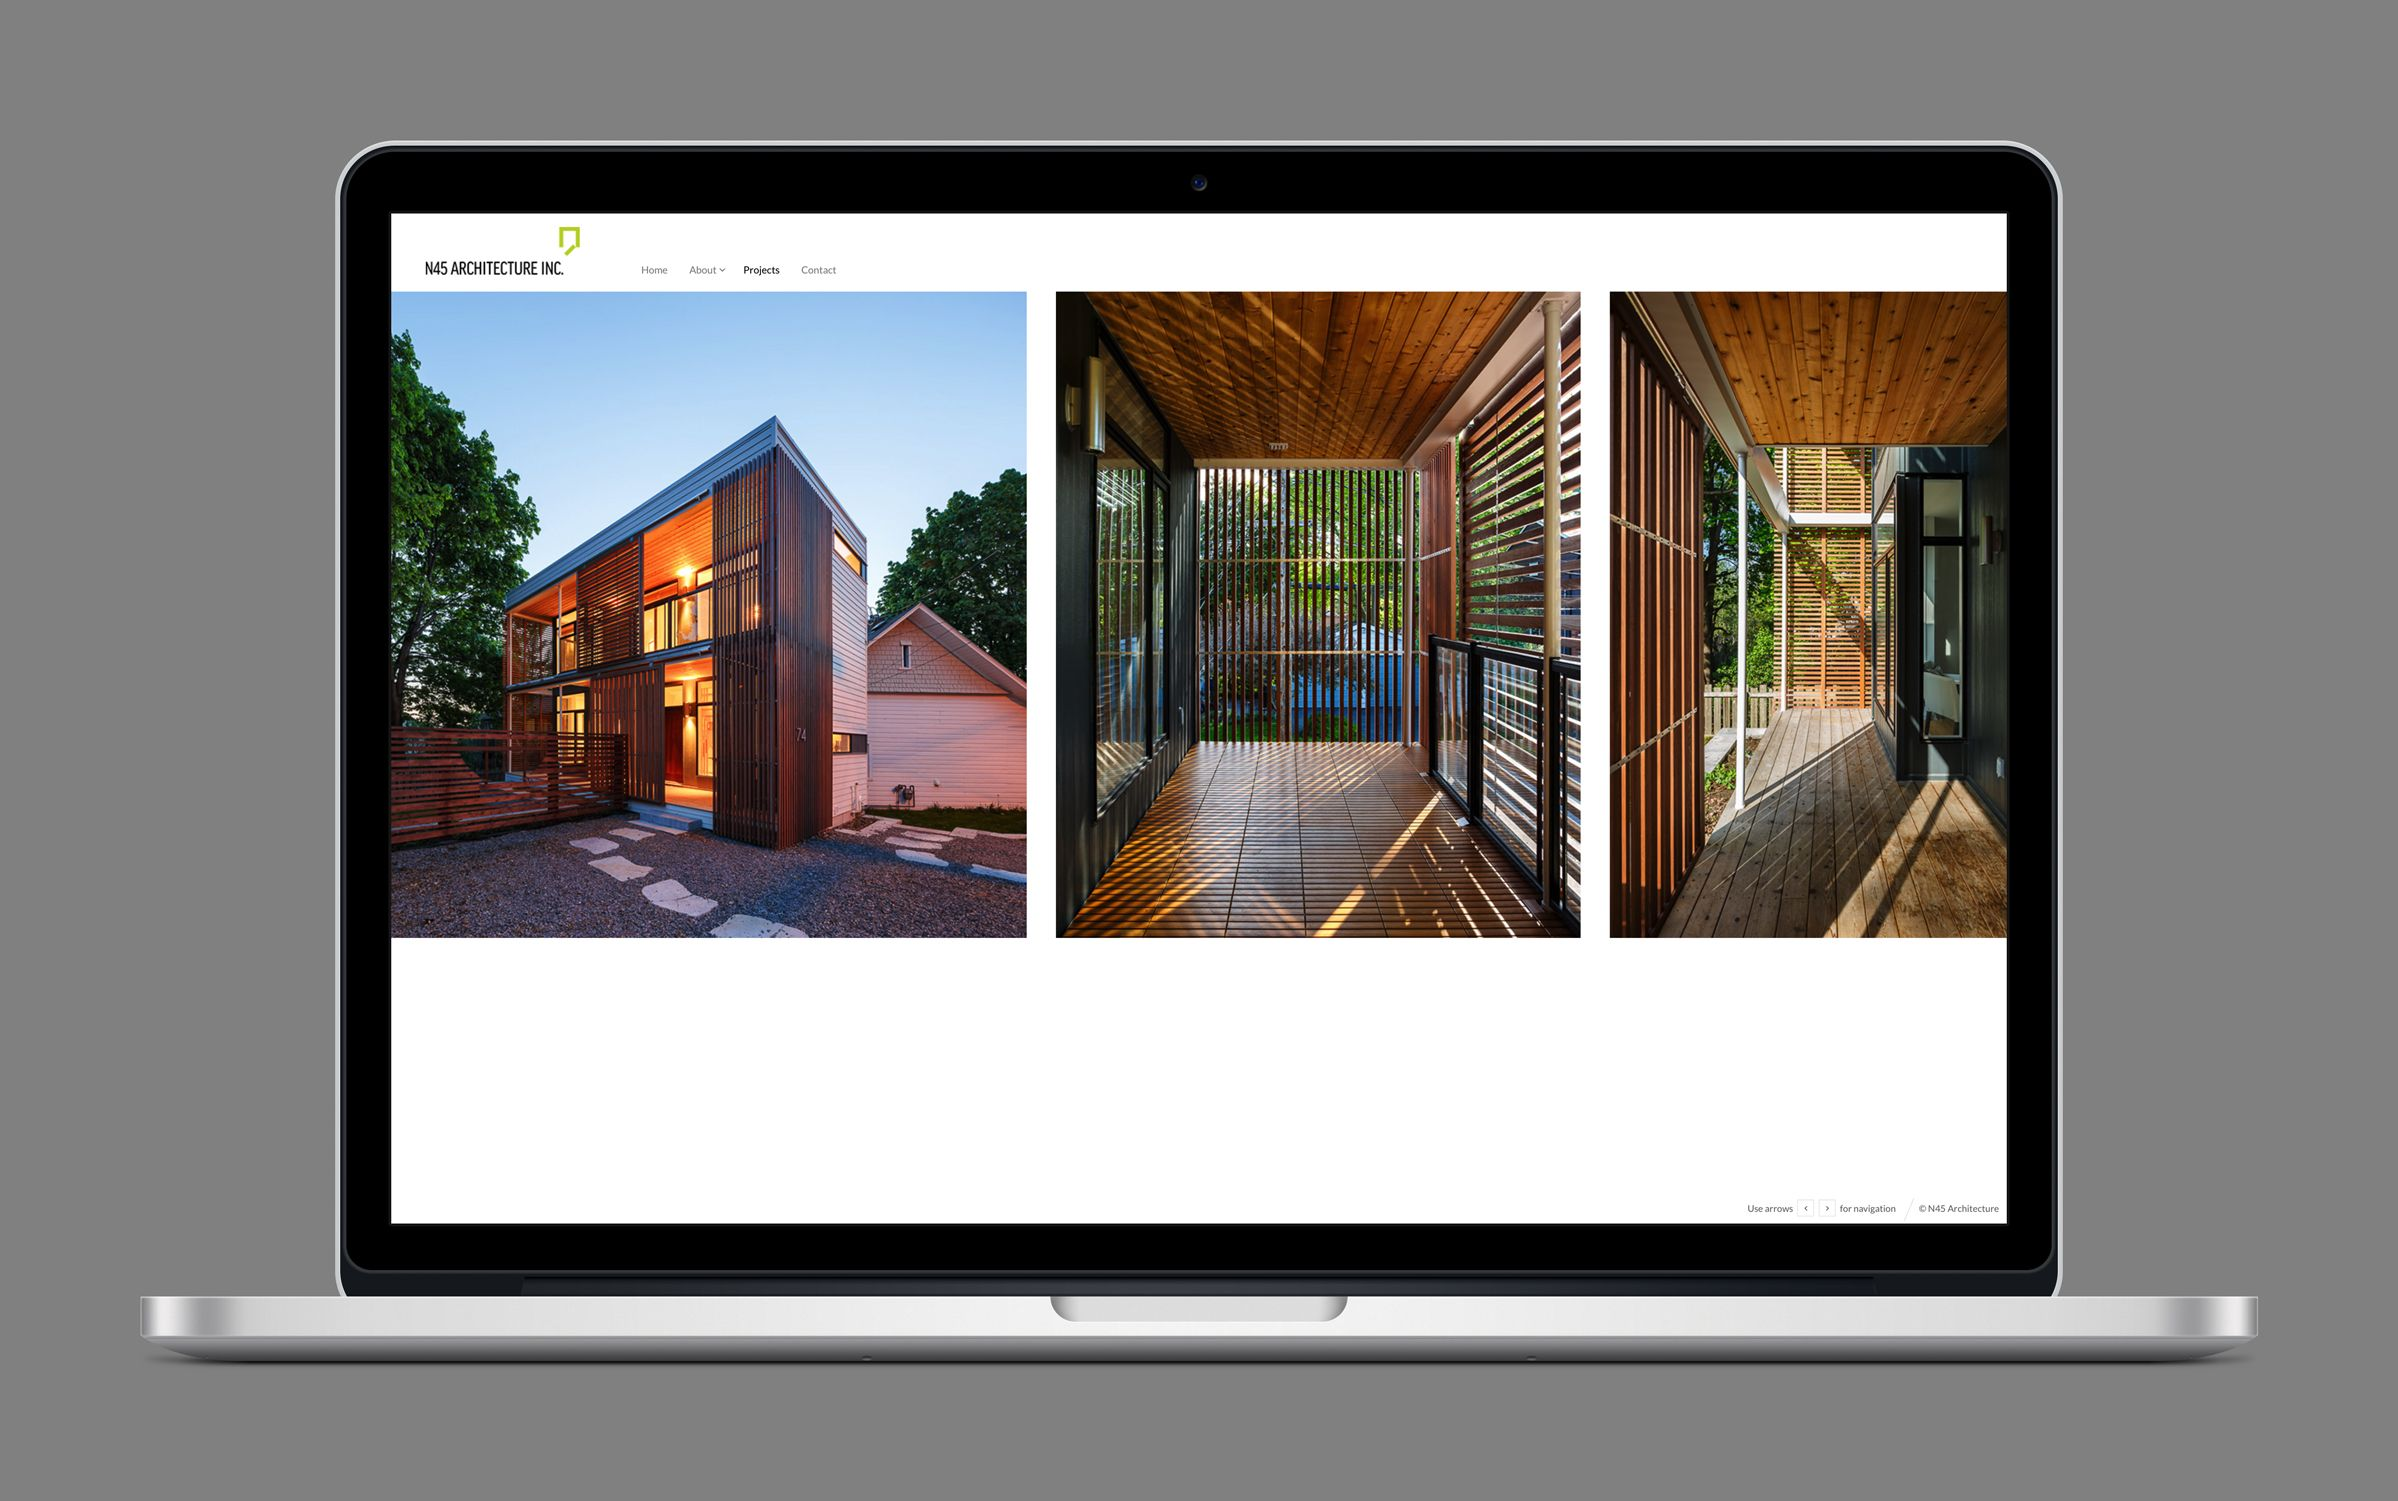 Website 5 for N45 Architecture Inc., architects by Graphic Designer idApostle